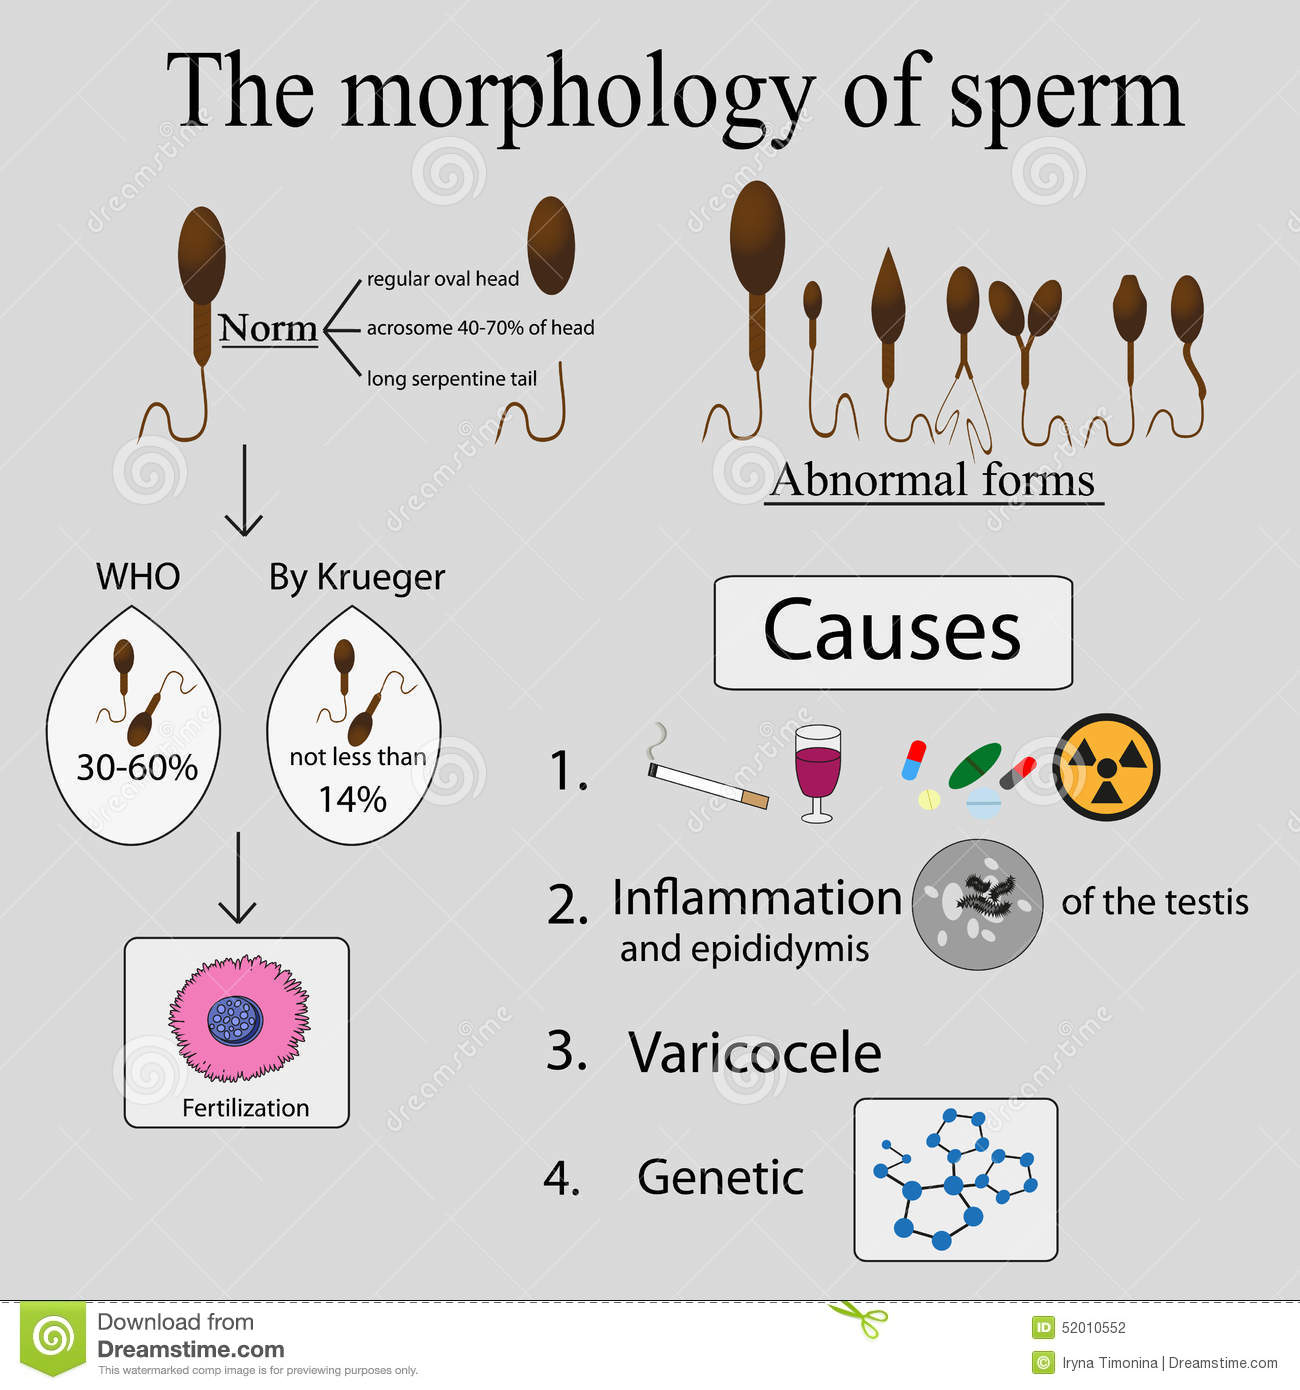 sperm strict morphology